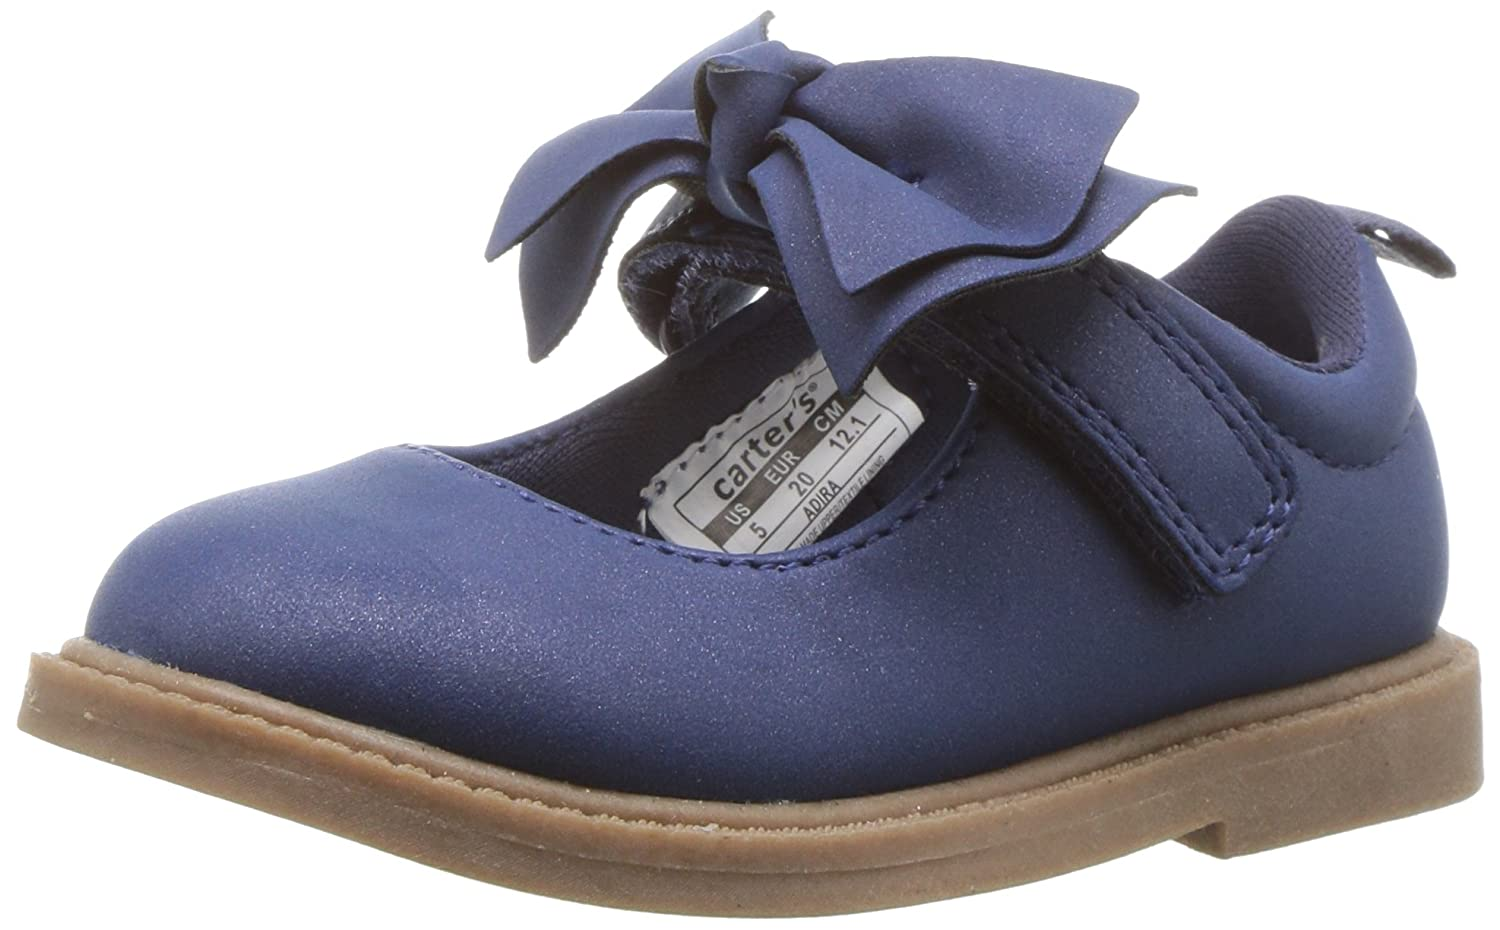 Carter's Kids' Adira Mary Jane Flat Carter' s